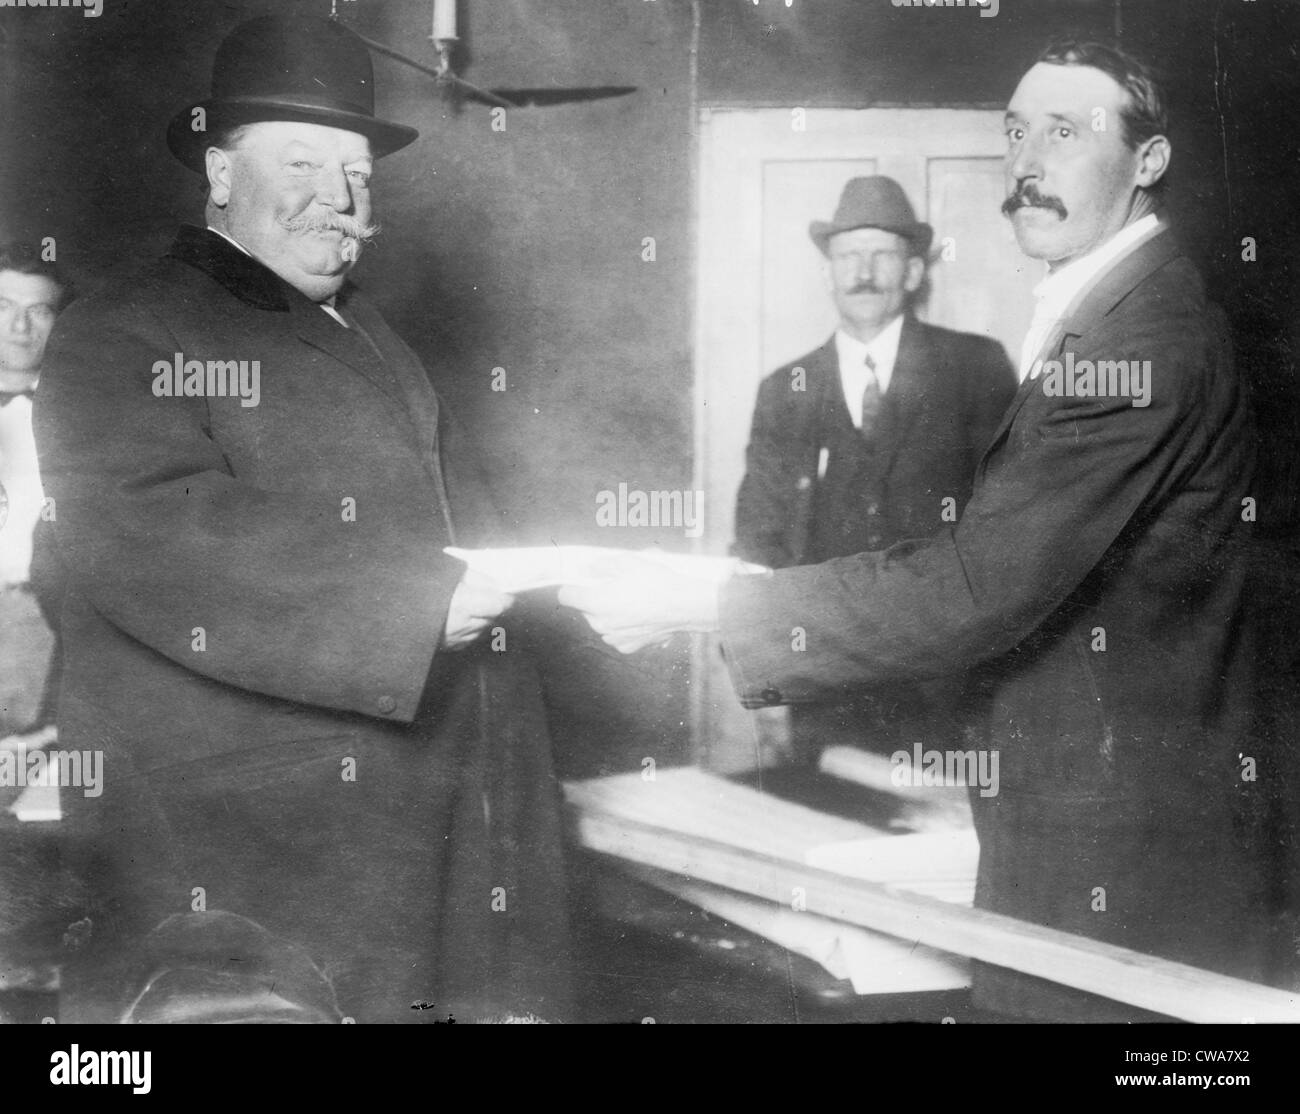 President William Taft (1857-1930) voting in 1912, when the divided Republican lost the Presidency to Democratic - Stock Image